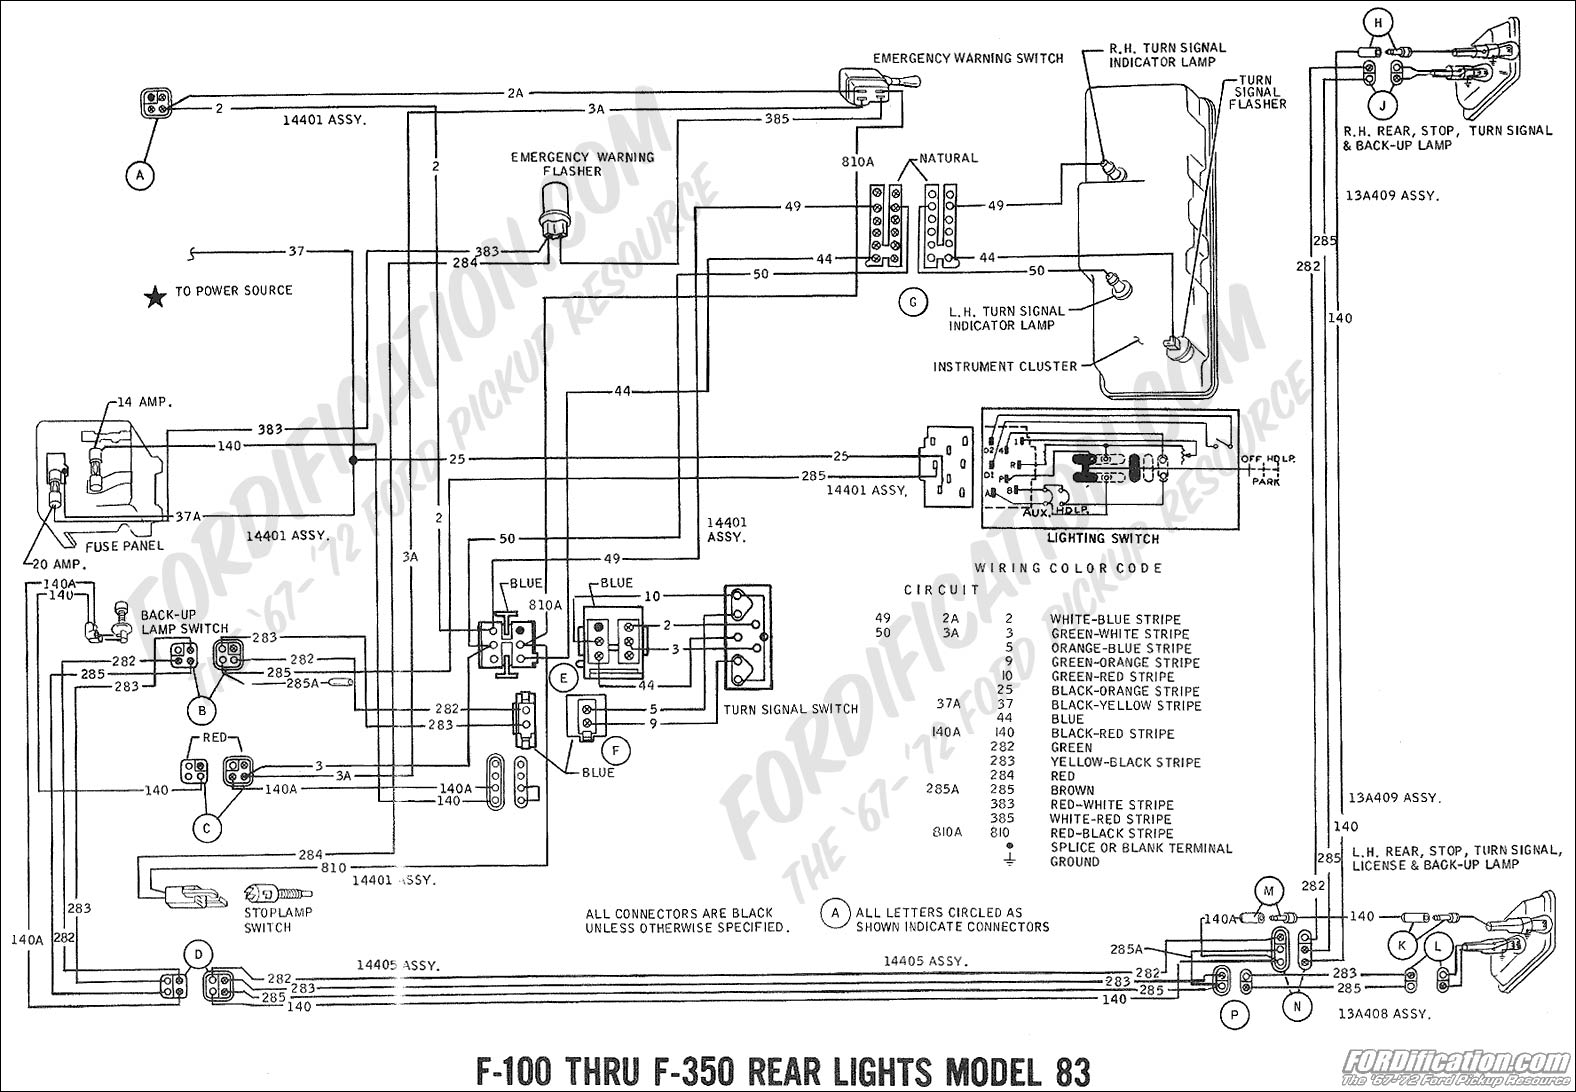 hight resolution of 1970 ford truck f600 alternator wiring diagram wiring diagram 1970 ford f600 wiring diagram wiring diagram